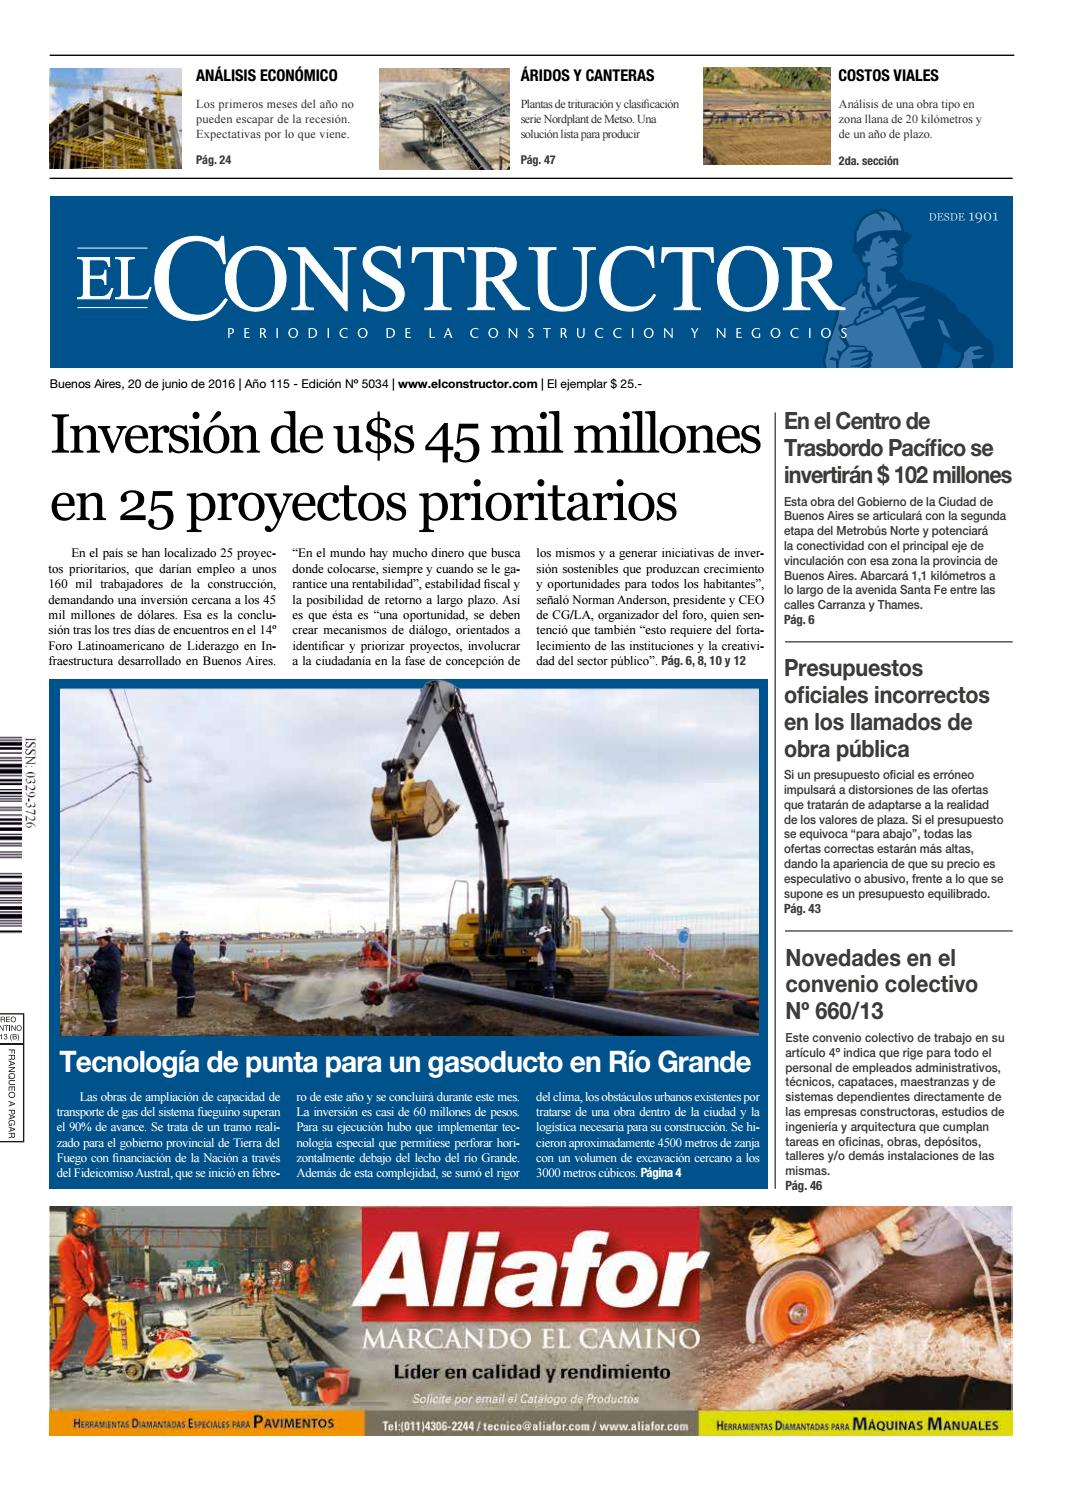 El Constructor 20 06 2016 - N° 5034 Año 115 by ELCO Editores - issuu 0fd73d2715be